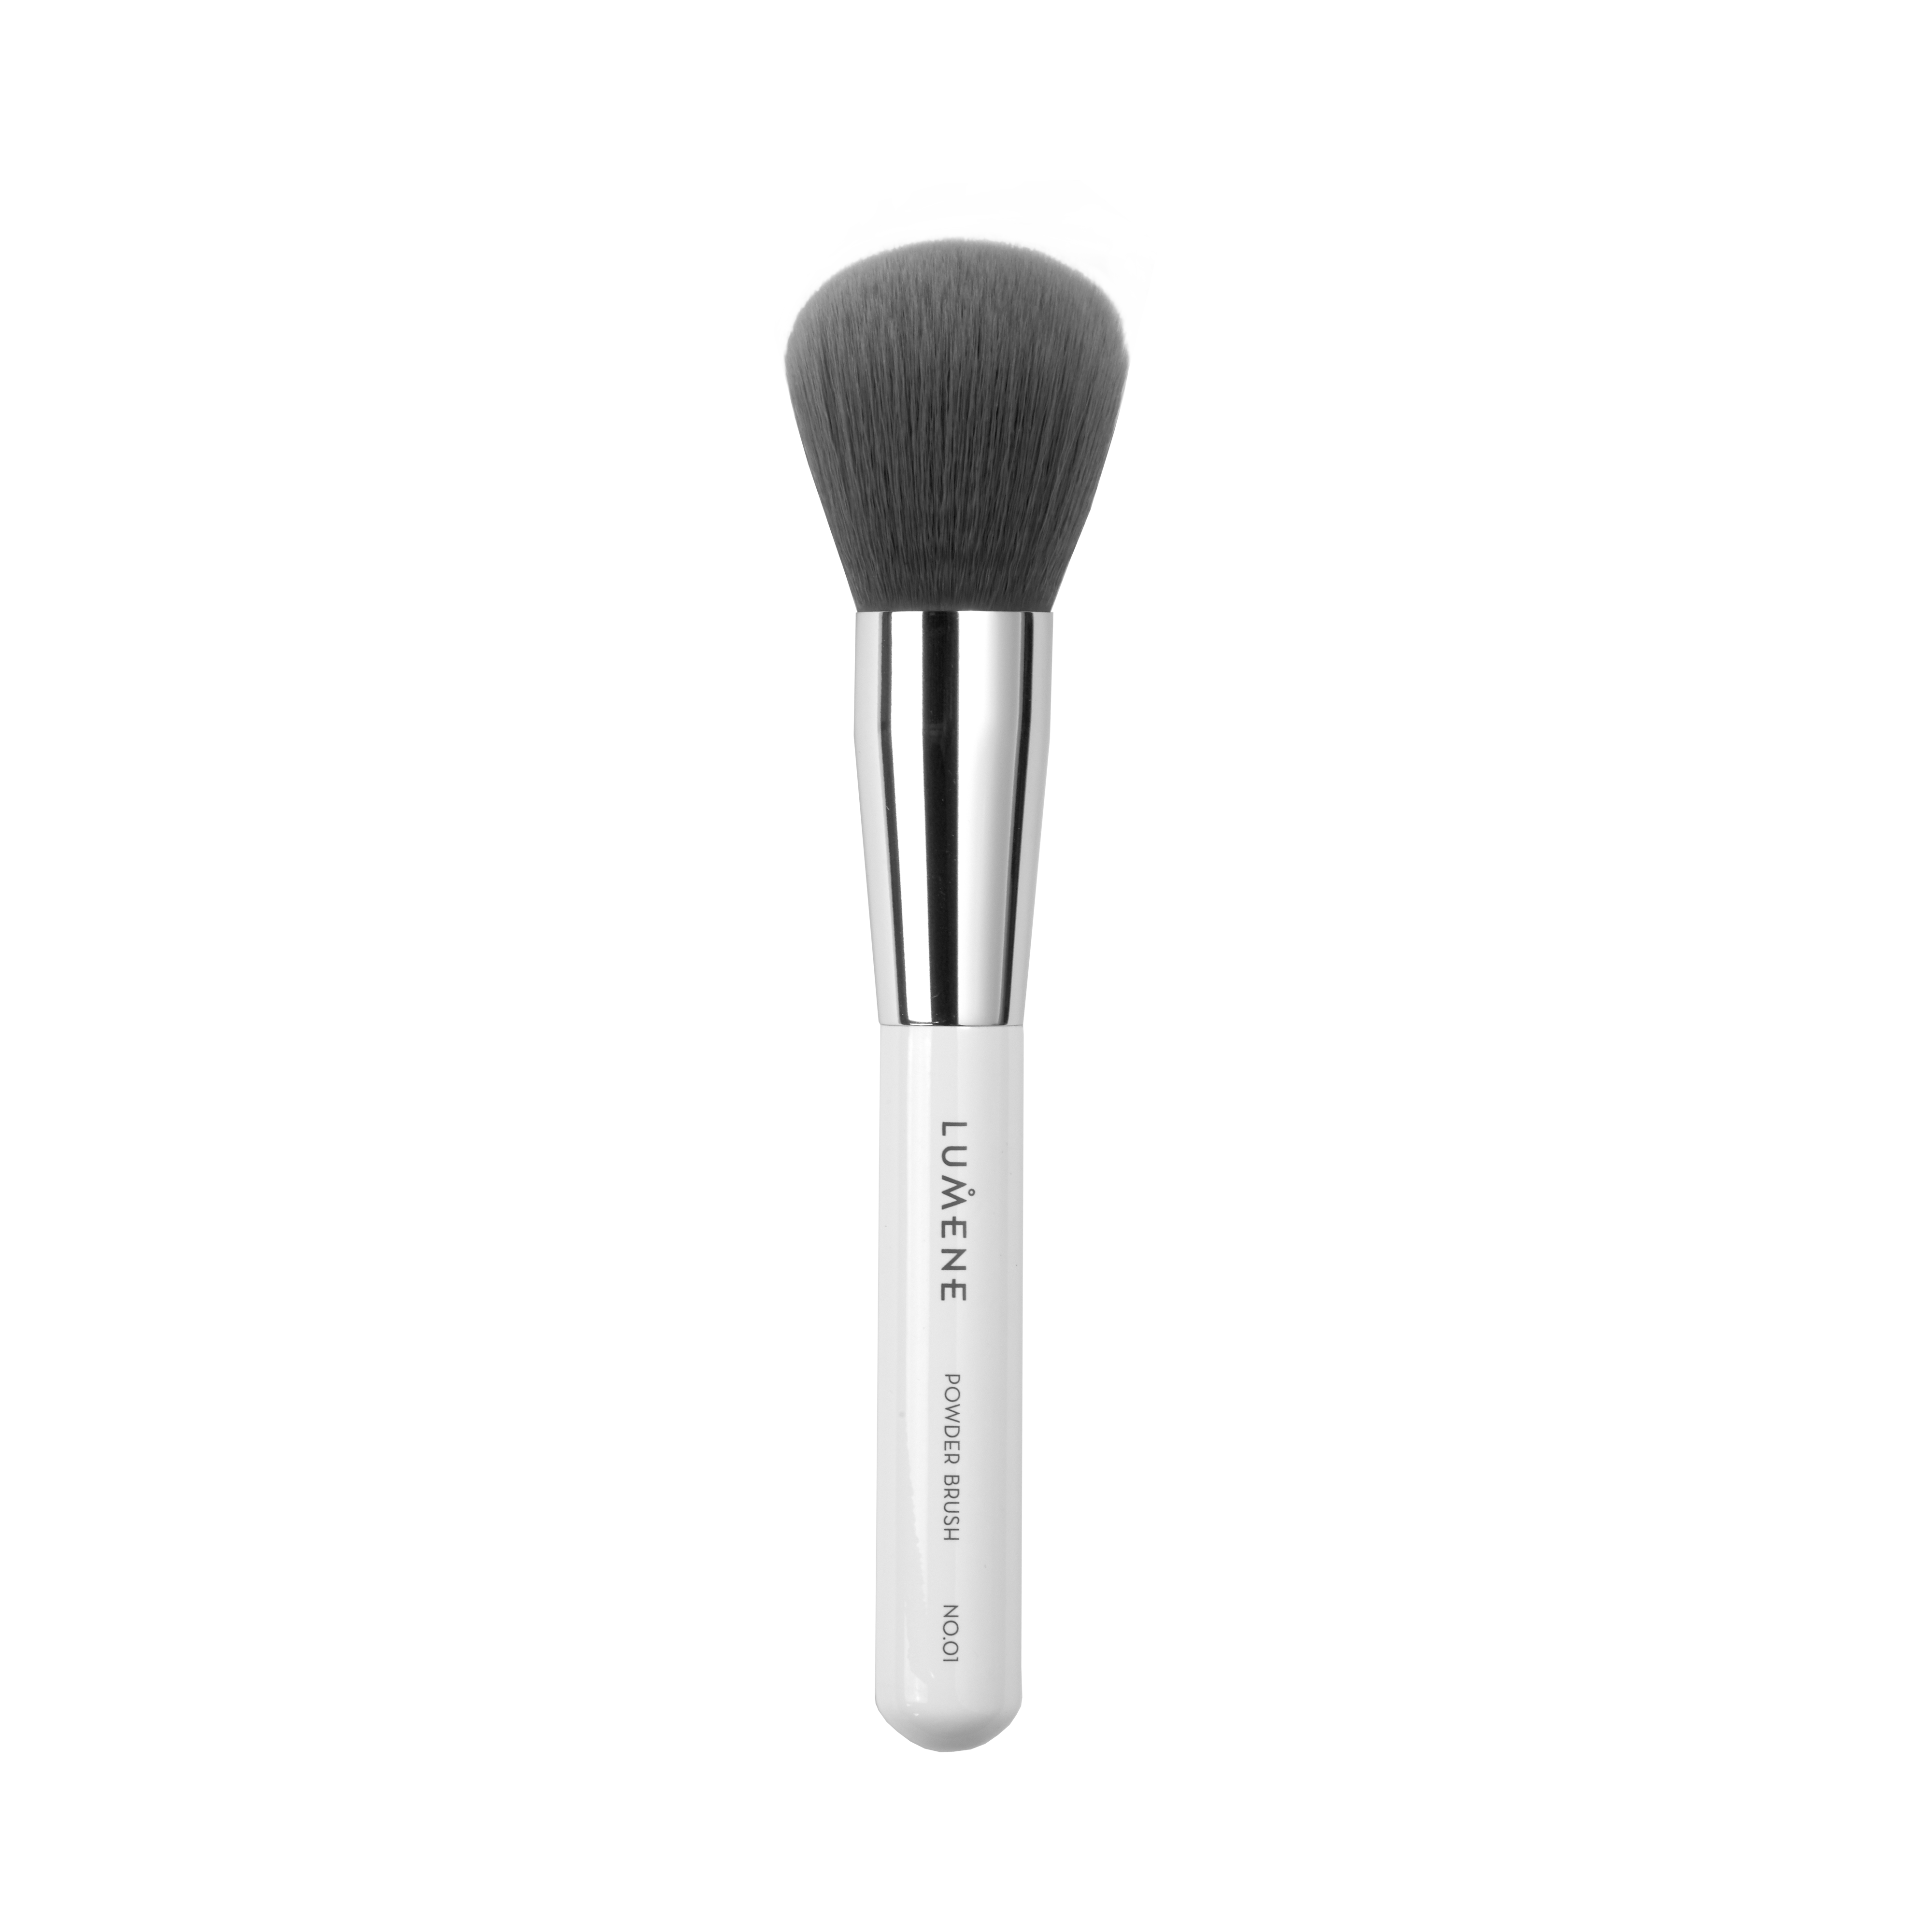 Nordic Chic Powder Brush No.01